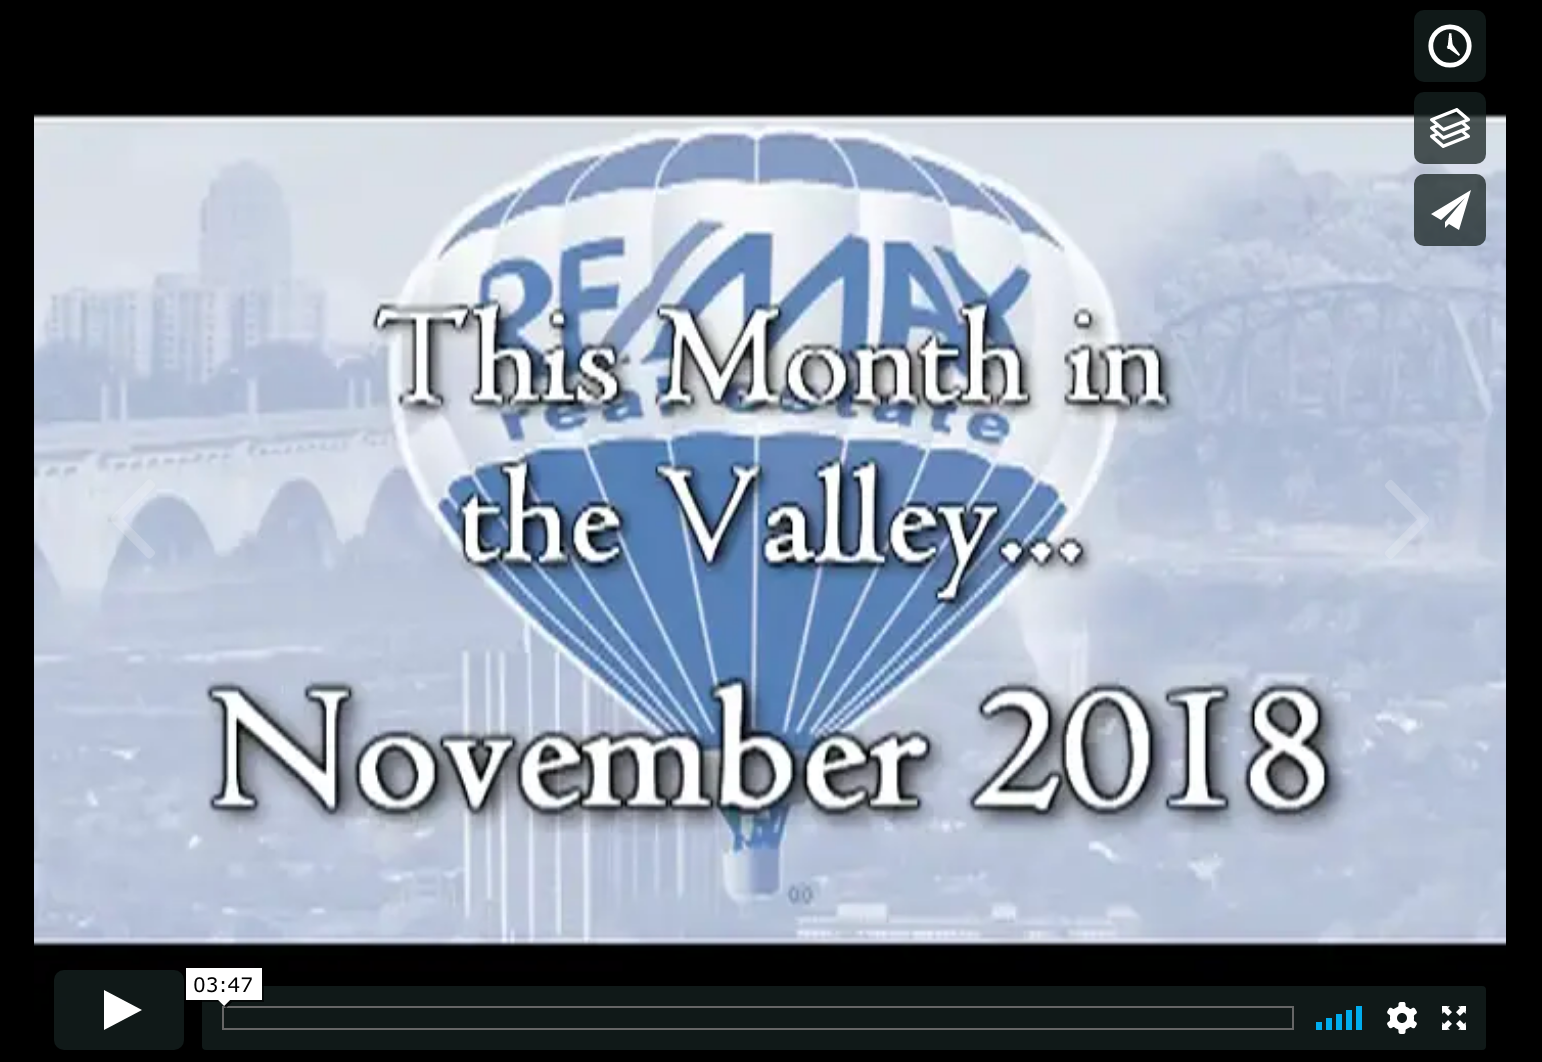 This Month in the Valley!